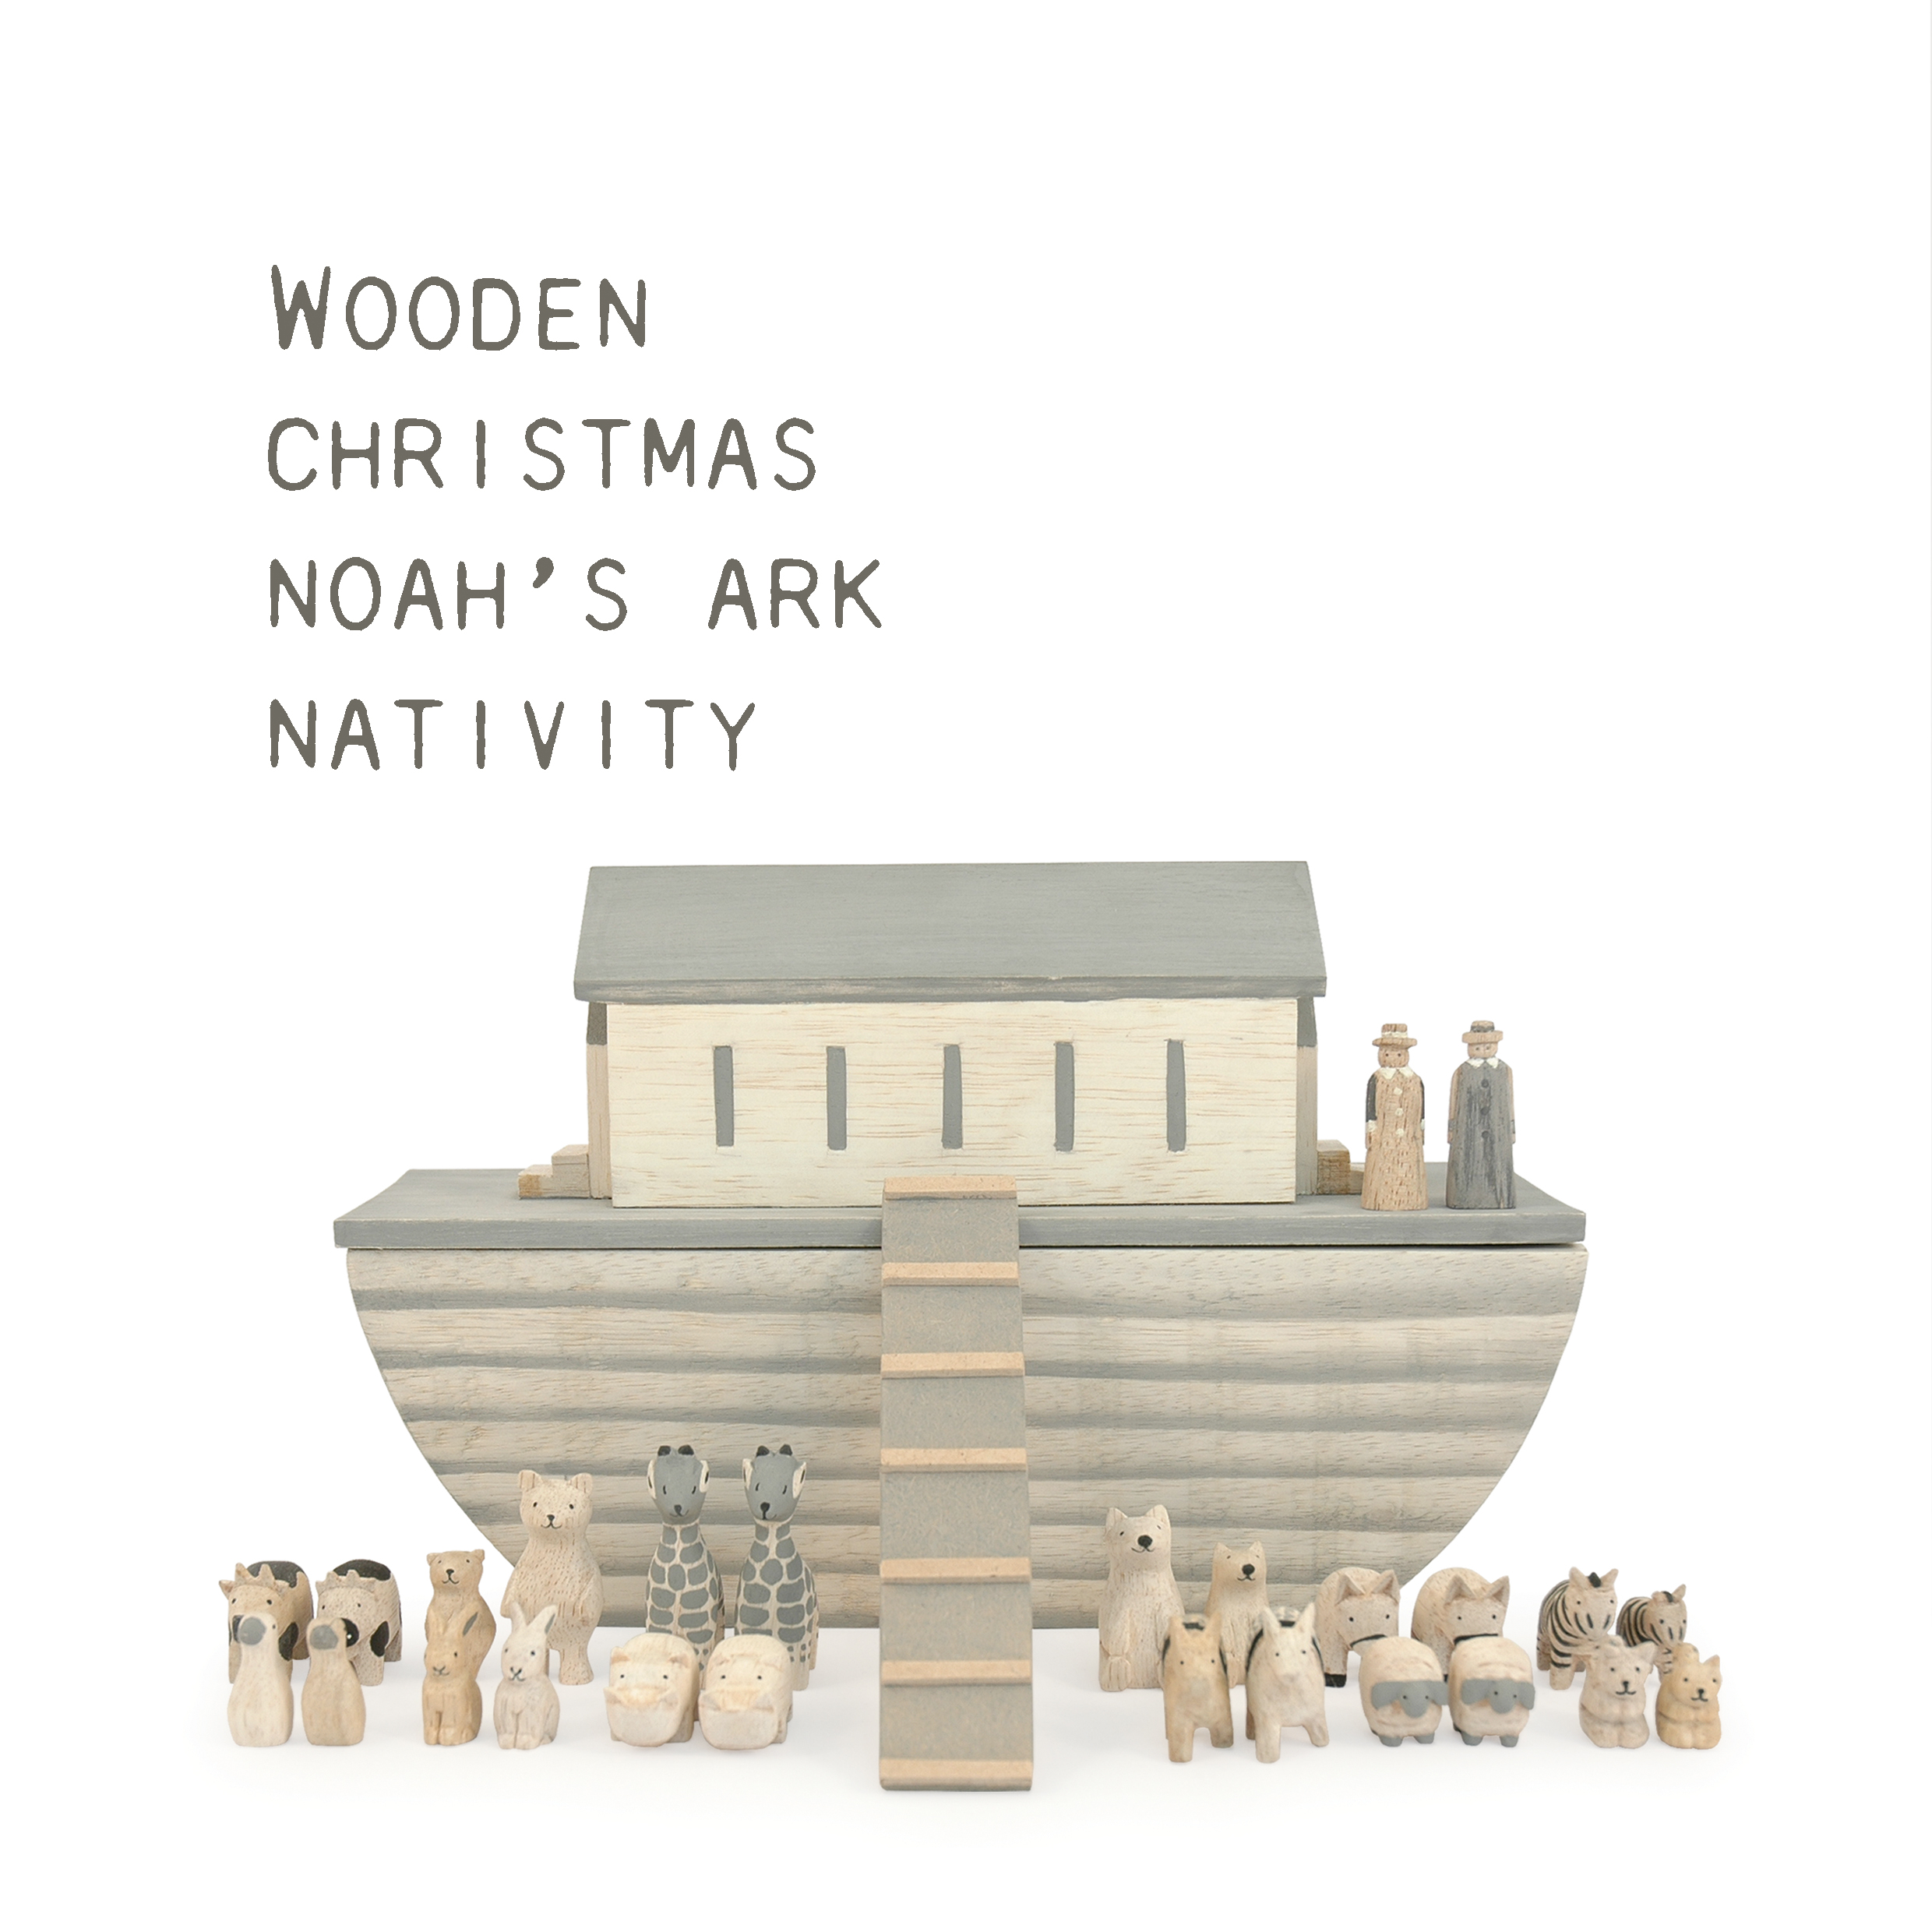 Noahs ark, Nativity & Christmas